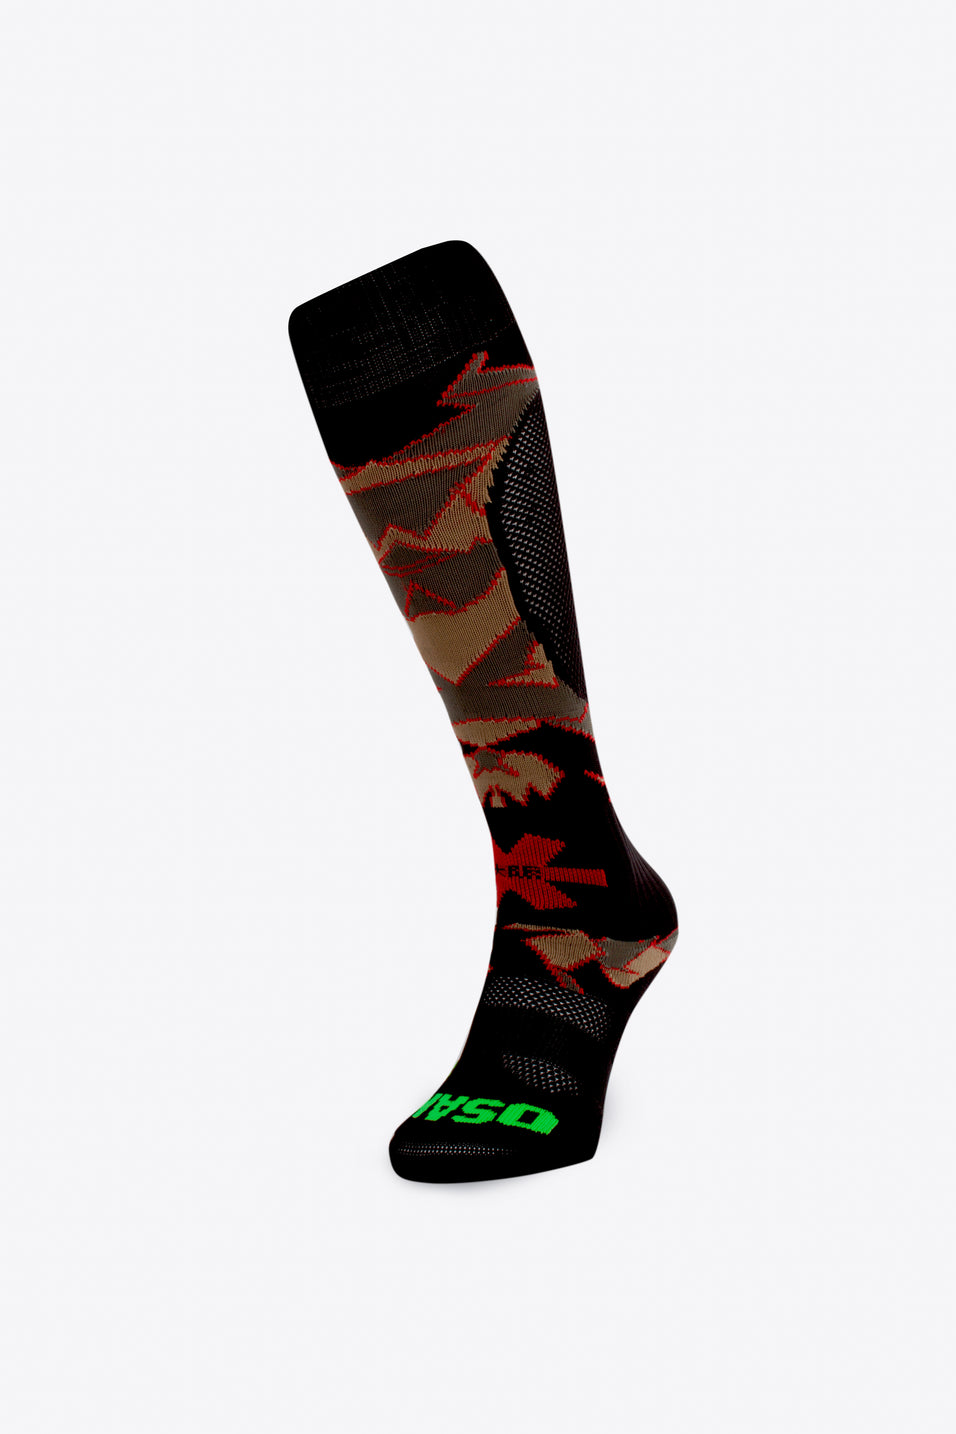 SOX - Desert Camo / Red